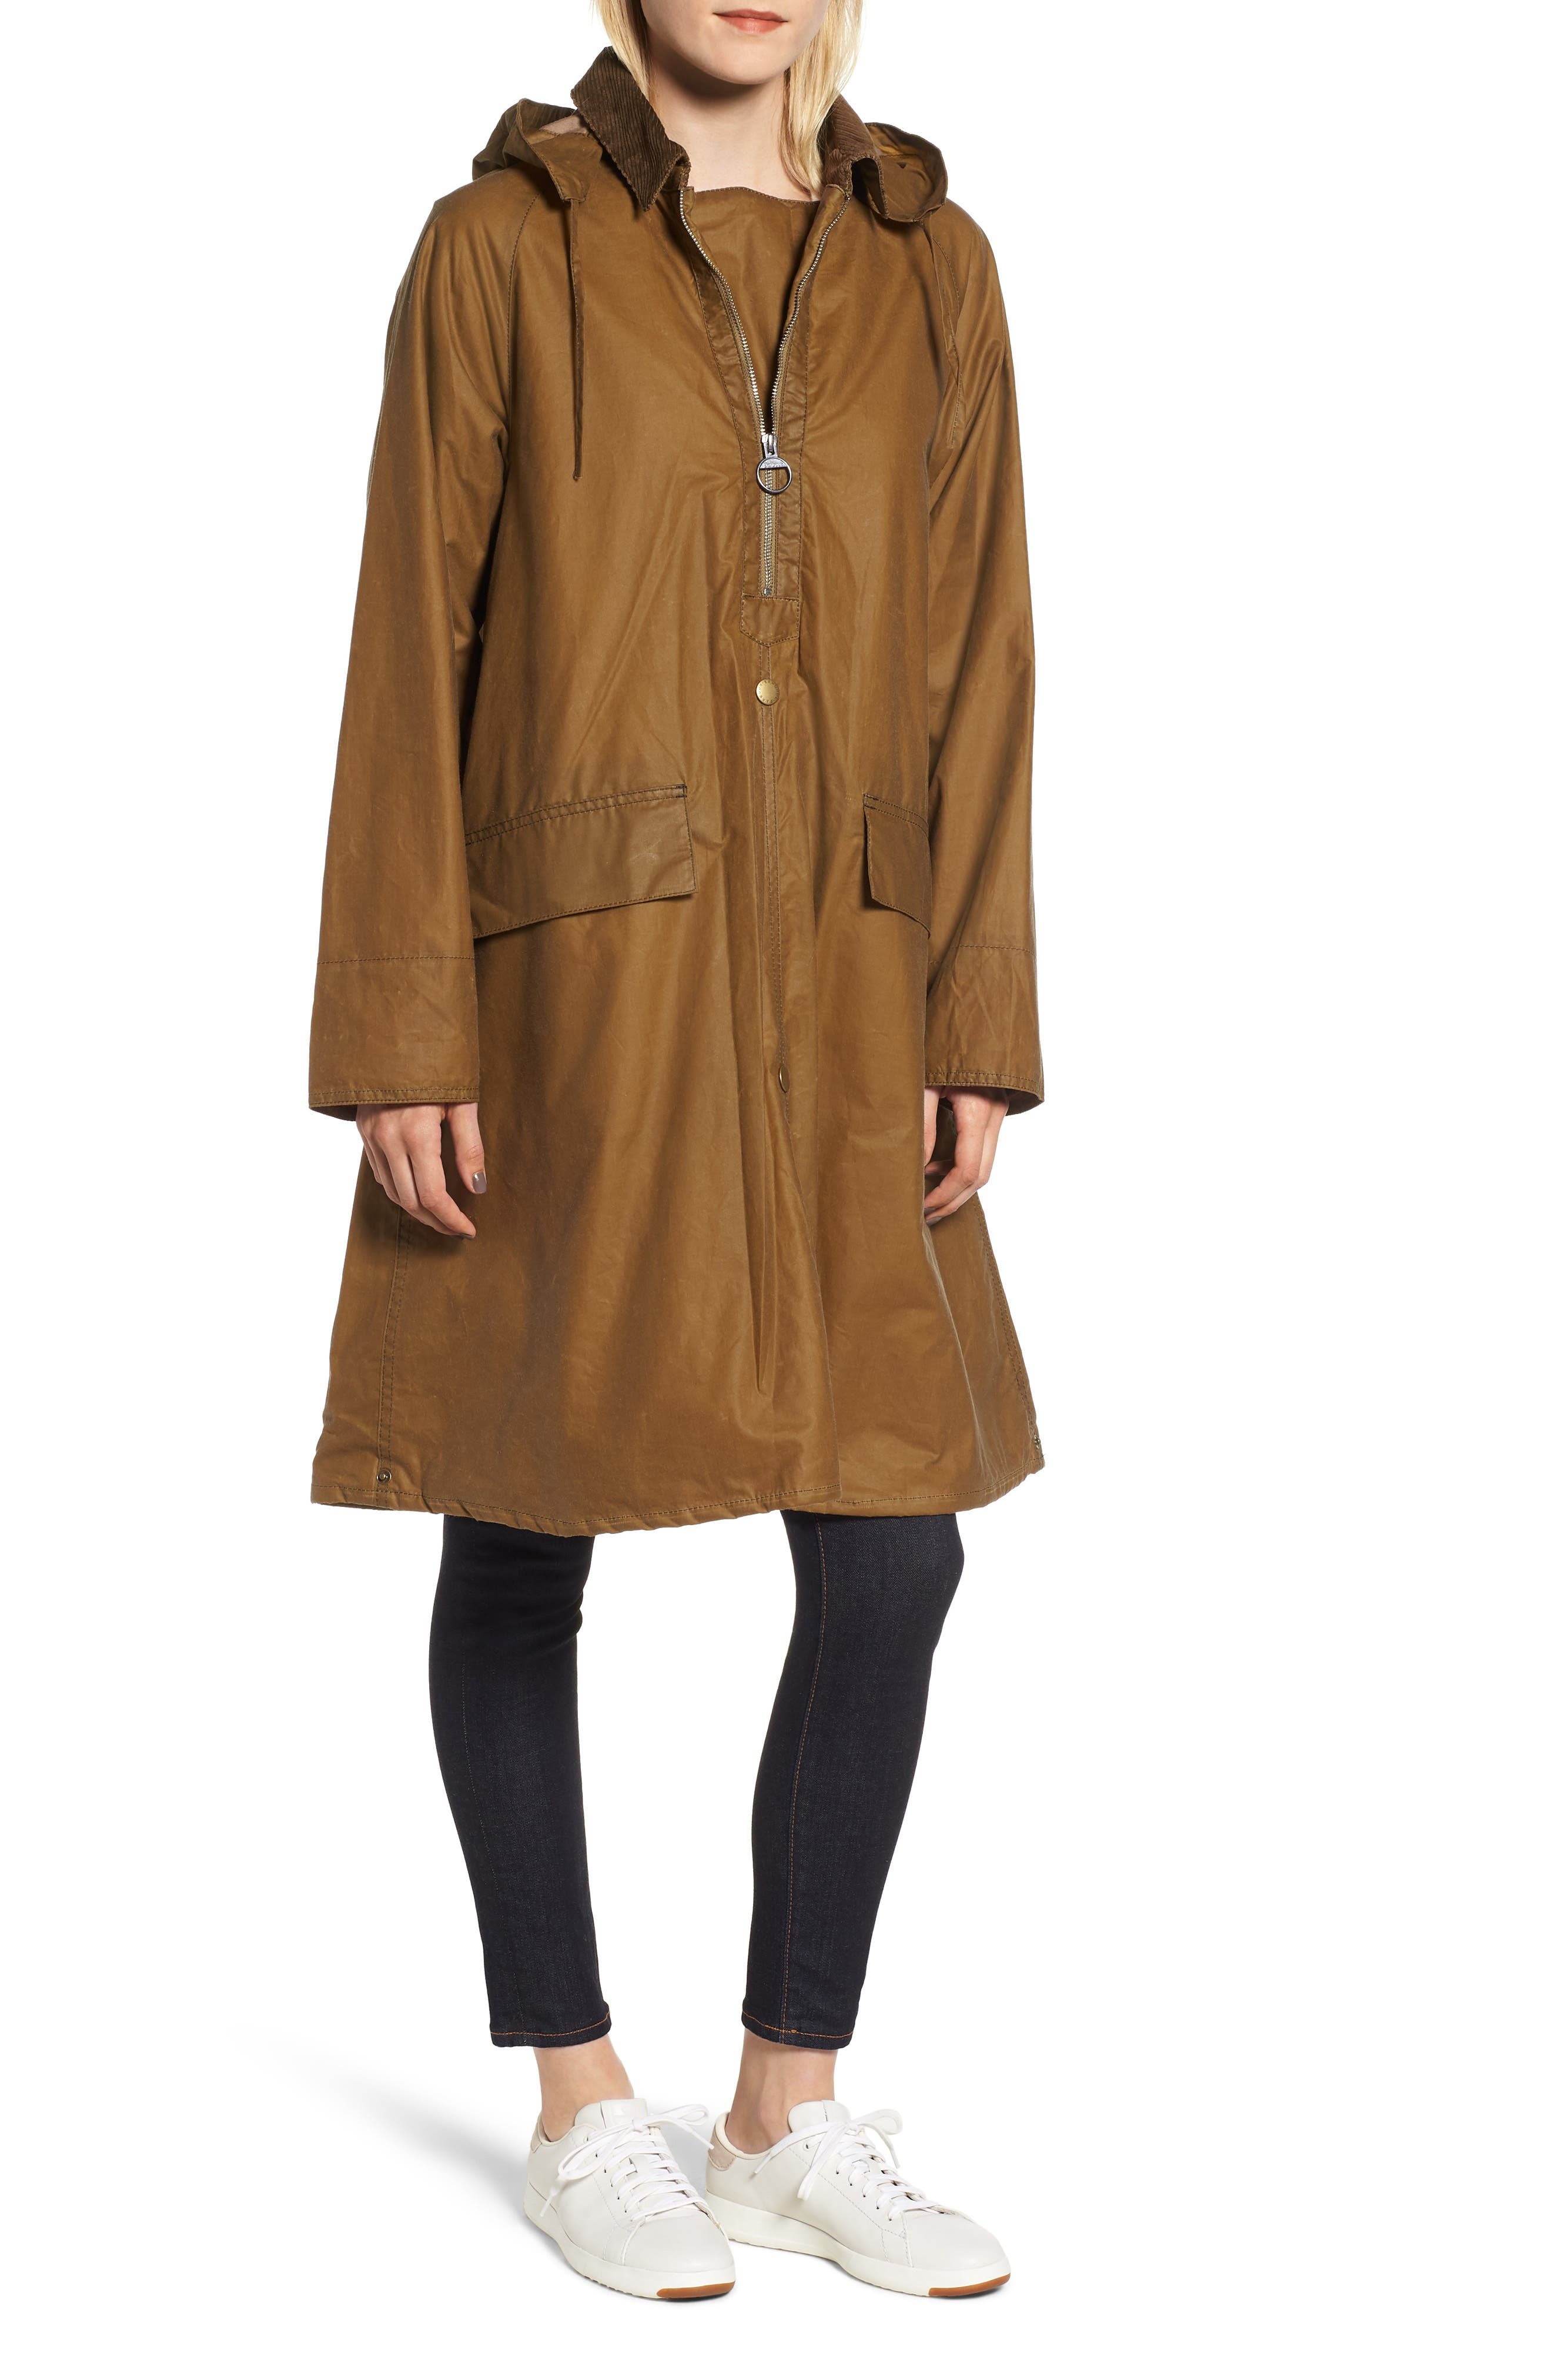 Margaret Howell Water Resistant Waxed Cotton Poncho,                             Main thumbnail 1, color,                             SAND